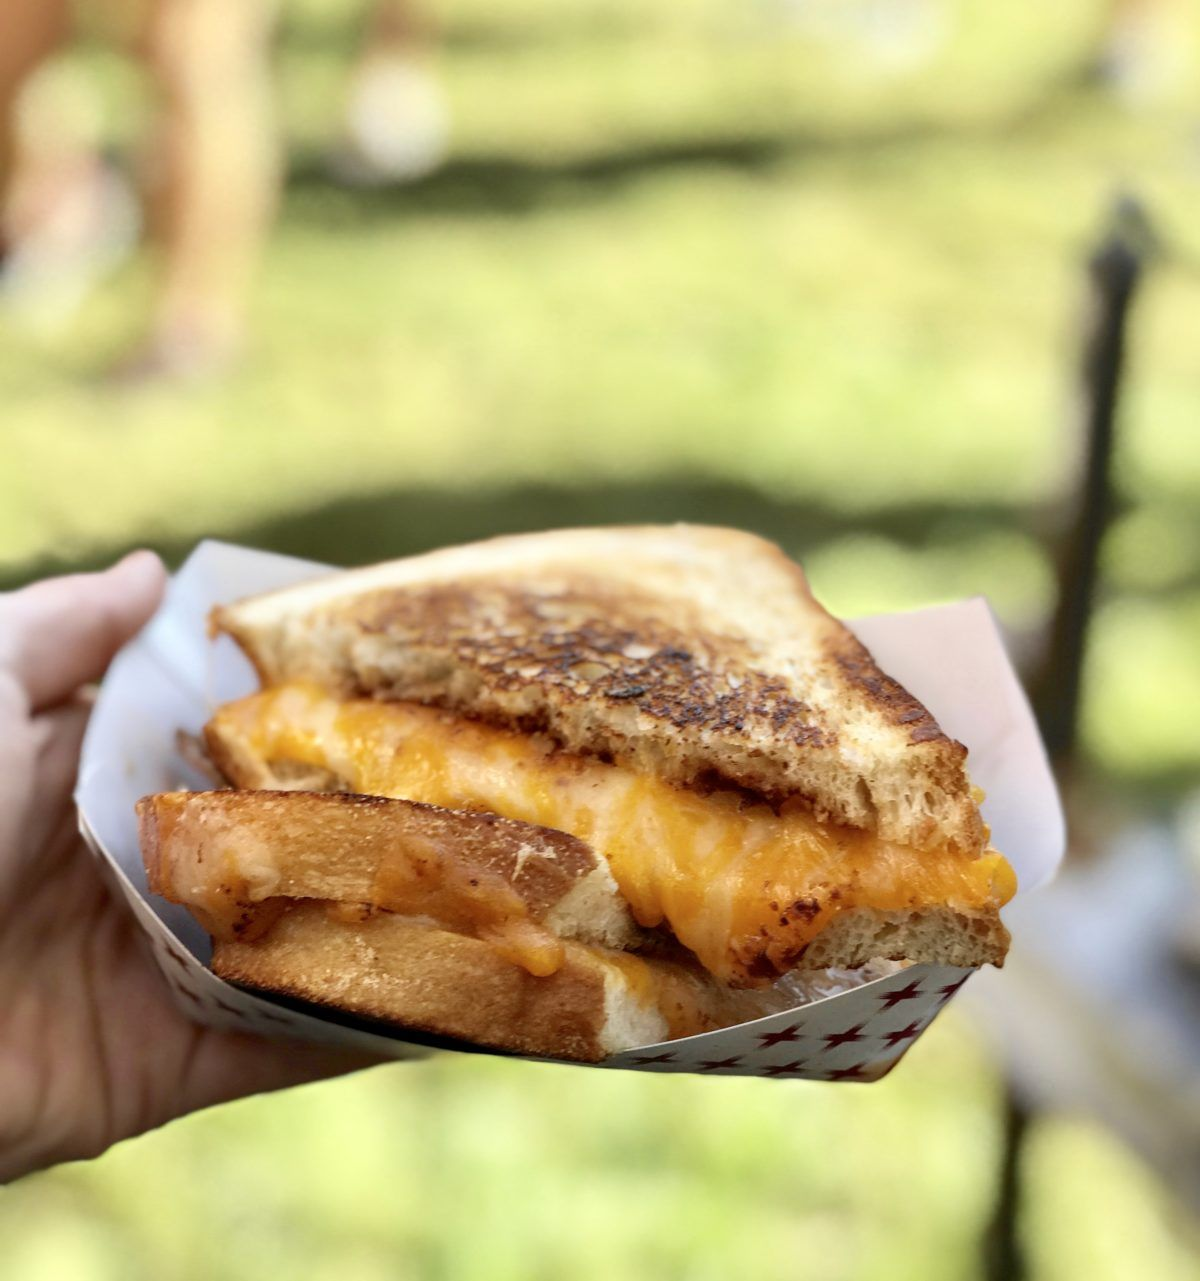 Best Of Austin City Limits Eats 2017 So Much Life